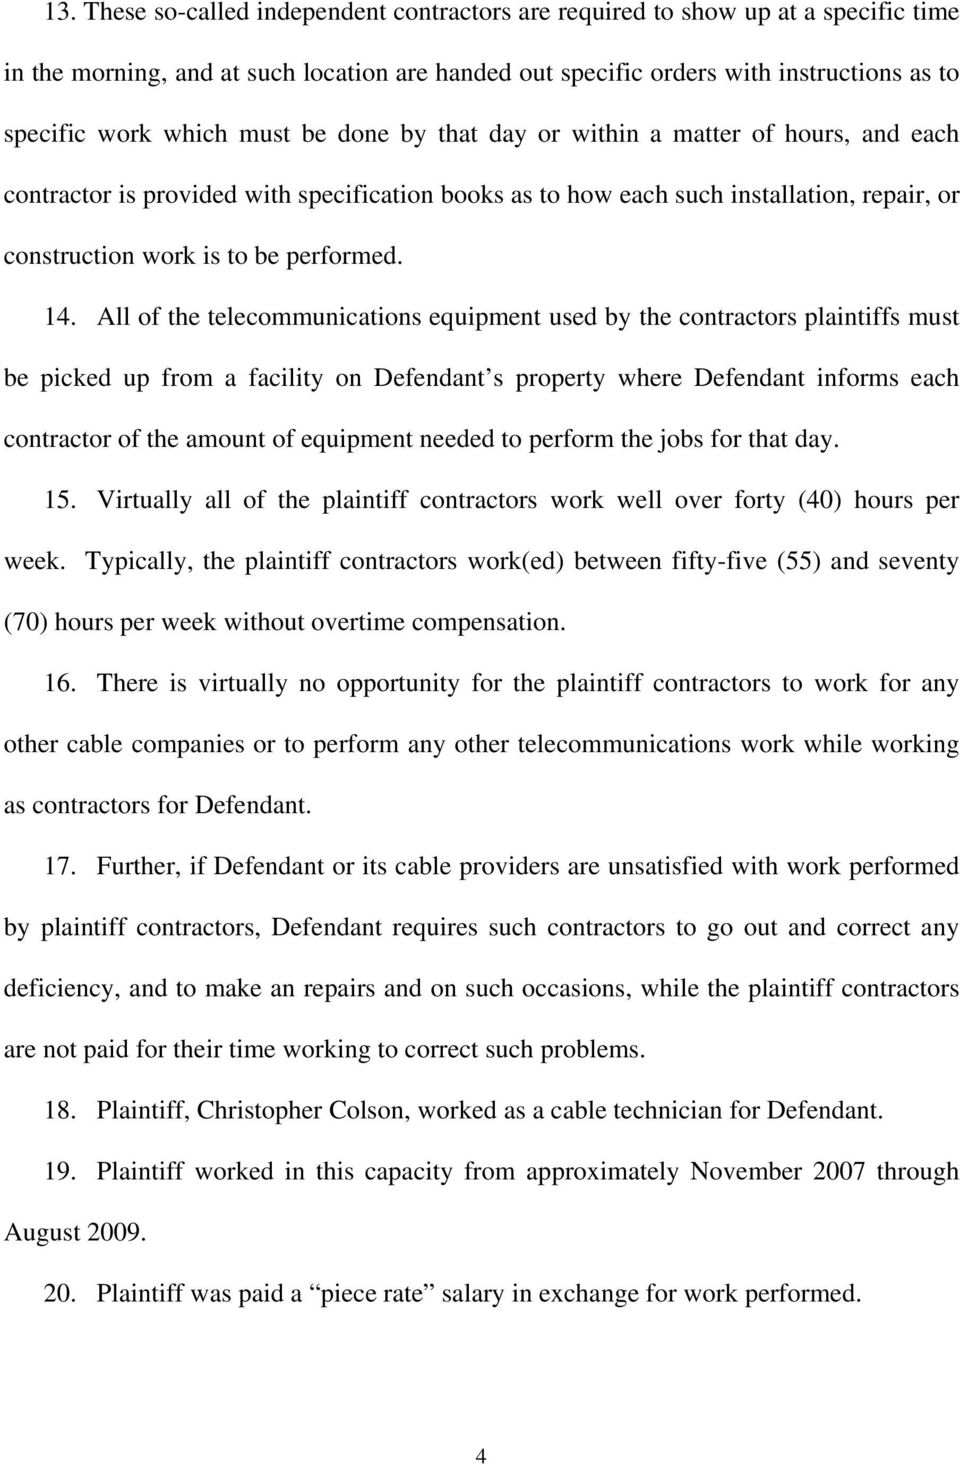 All of the telecommunications equipment used by the contractors plaintiffs must be picked up from a facility on Defendant s property where Defendant informs each contractor of the amount of equipment